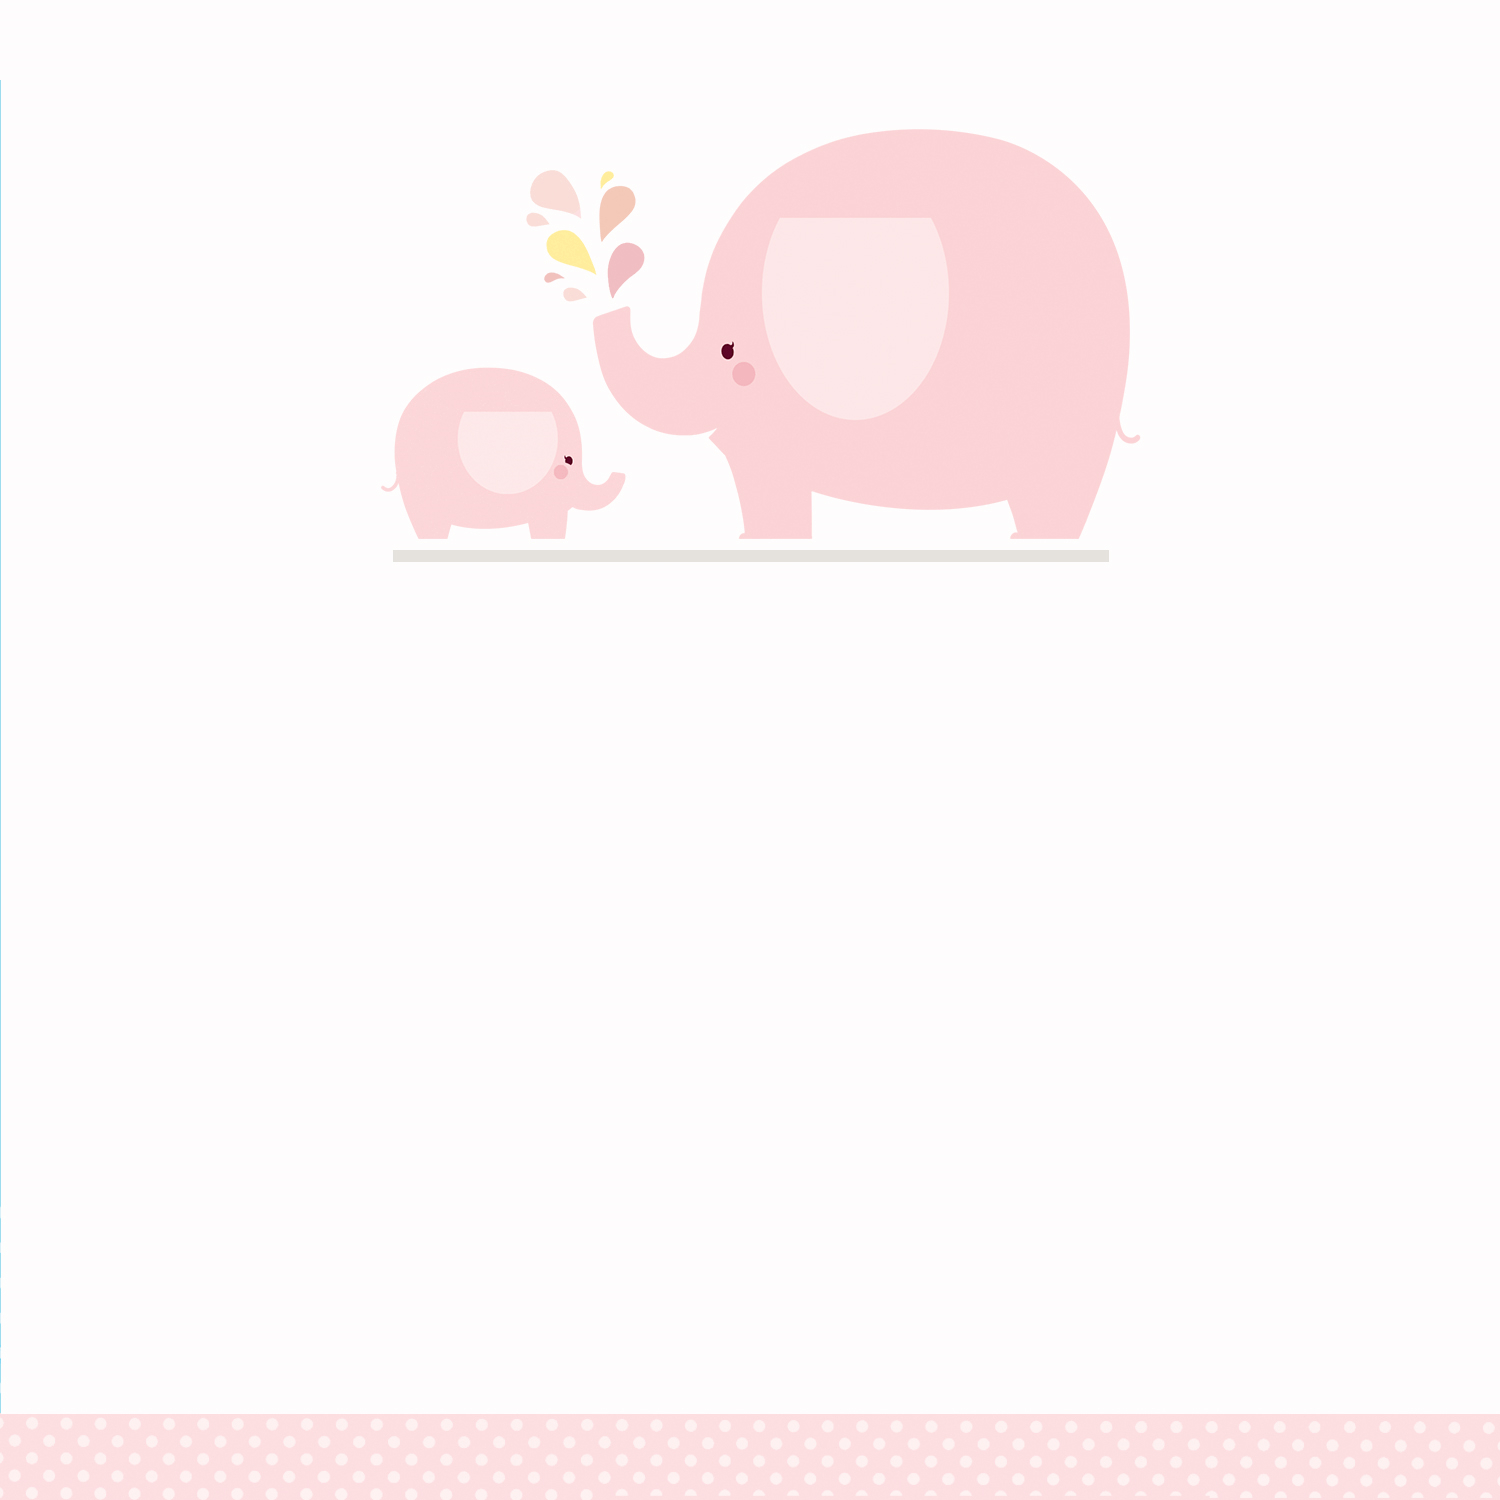 Pink Baby Elephant - Free Printable Baby Shower Invitation Template - Free Printable Elephant Images